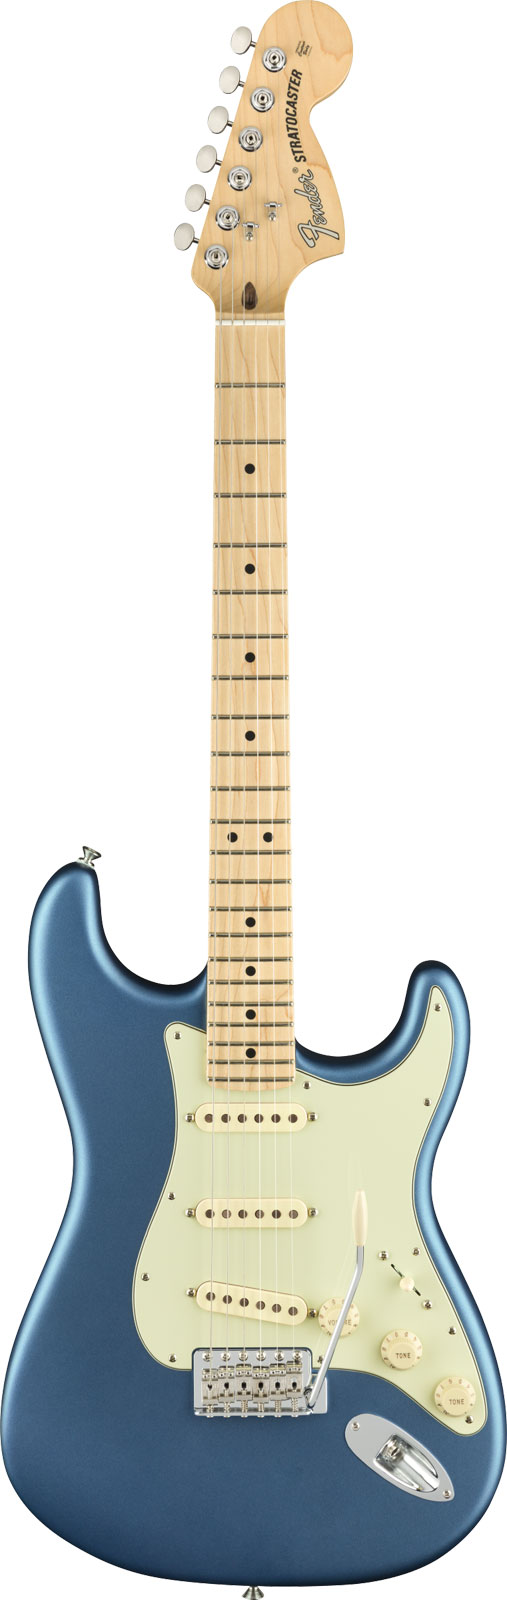 AMERICAN PERFORMER STRATOCASTER MN SATIN LAKE PLACID BLUE